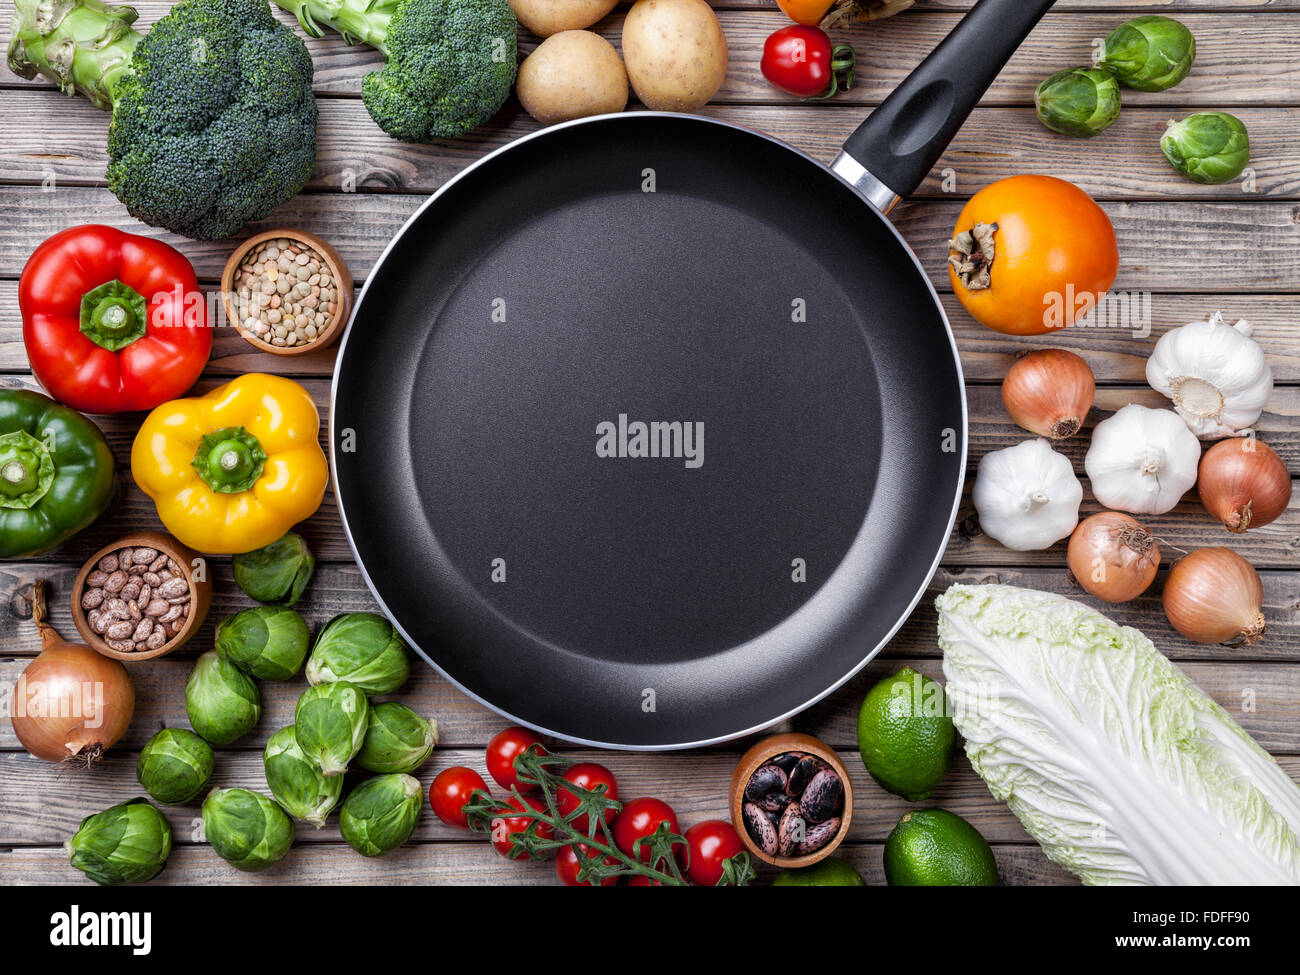 Various vegetables fruits and herbs with a frying pan on wooden background - Stock Image